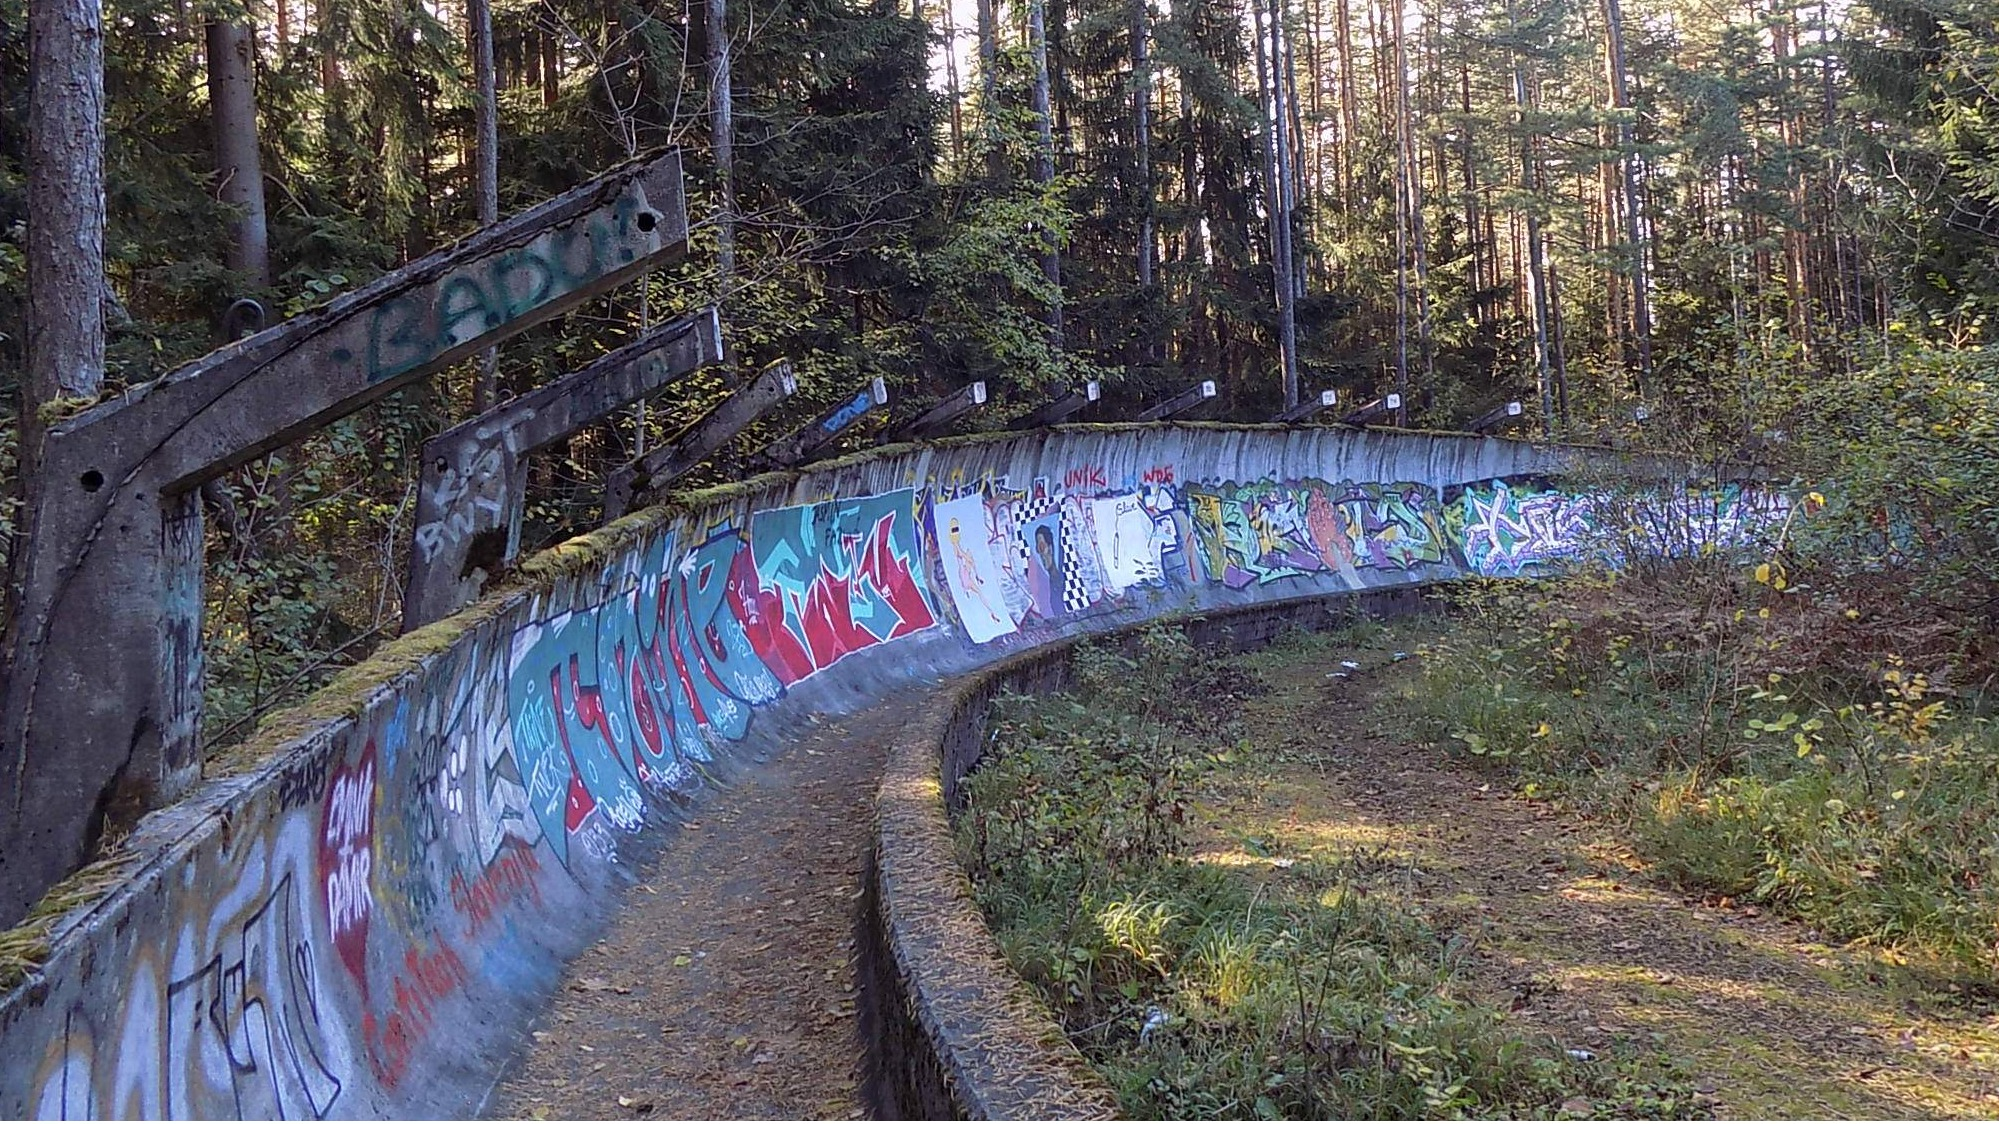 Most beautiful abandoned places - Sarajevo bobsleigh